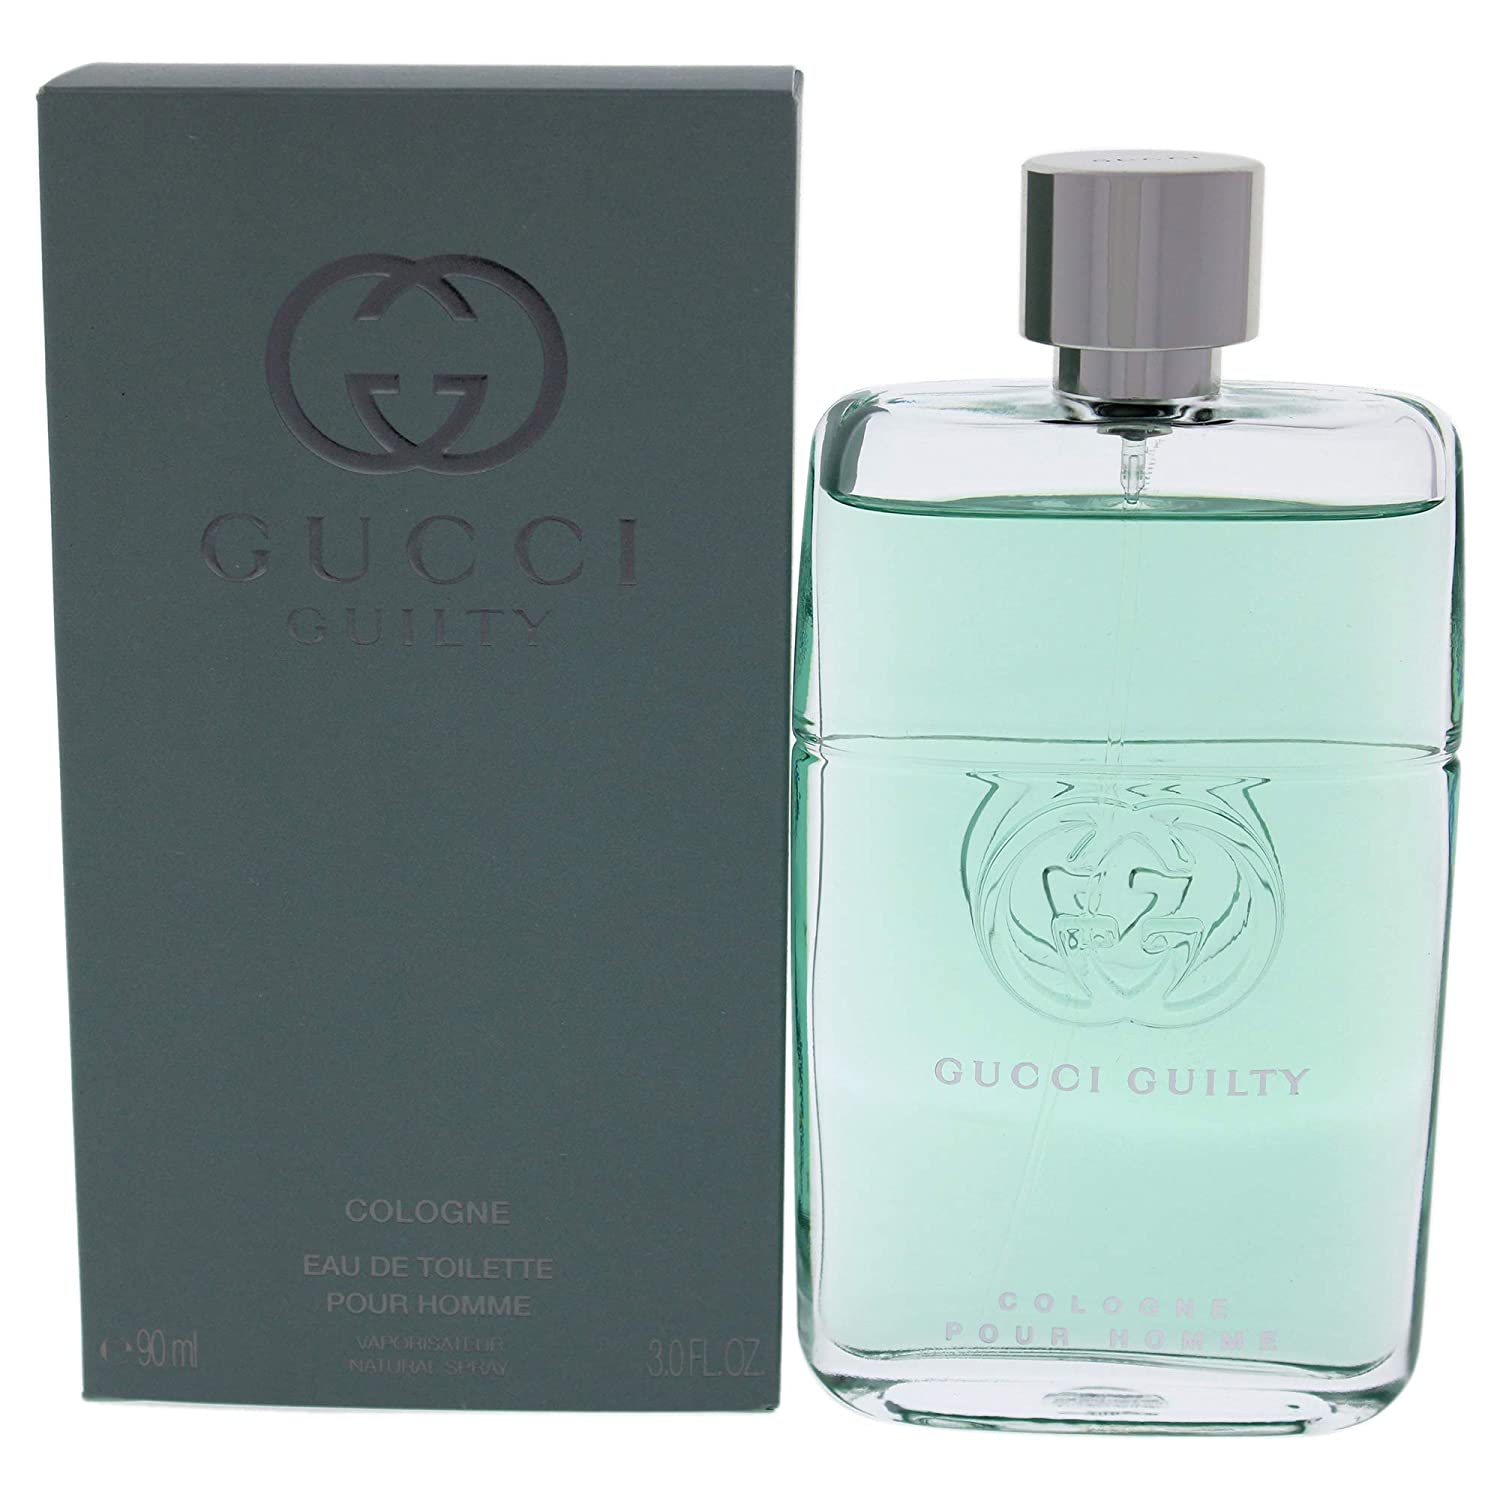 Gucci Guilty Cologne by Gucci for Men - 3 oz EDT Spray, clear